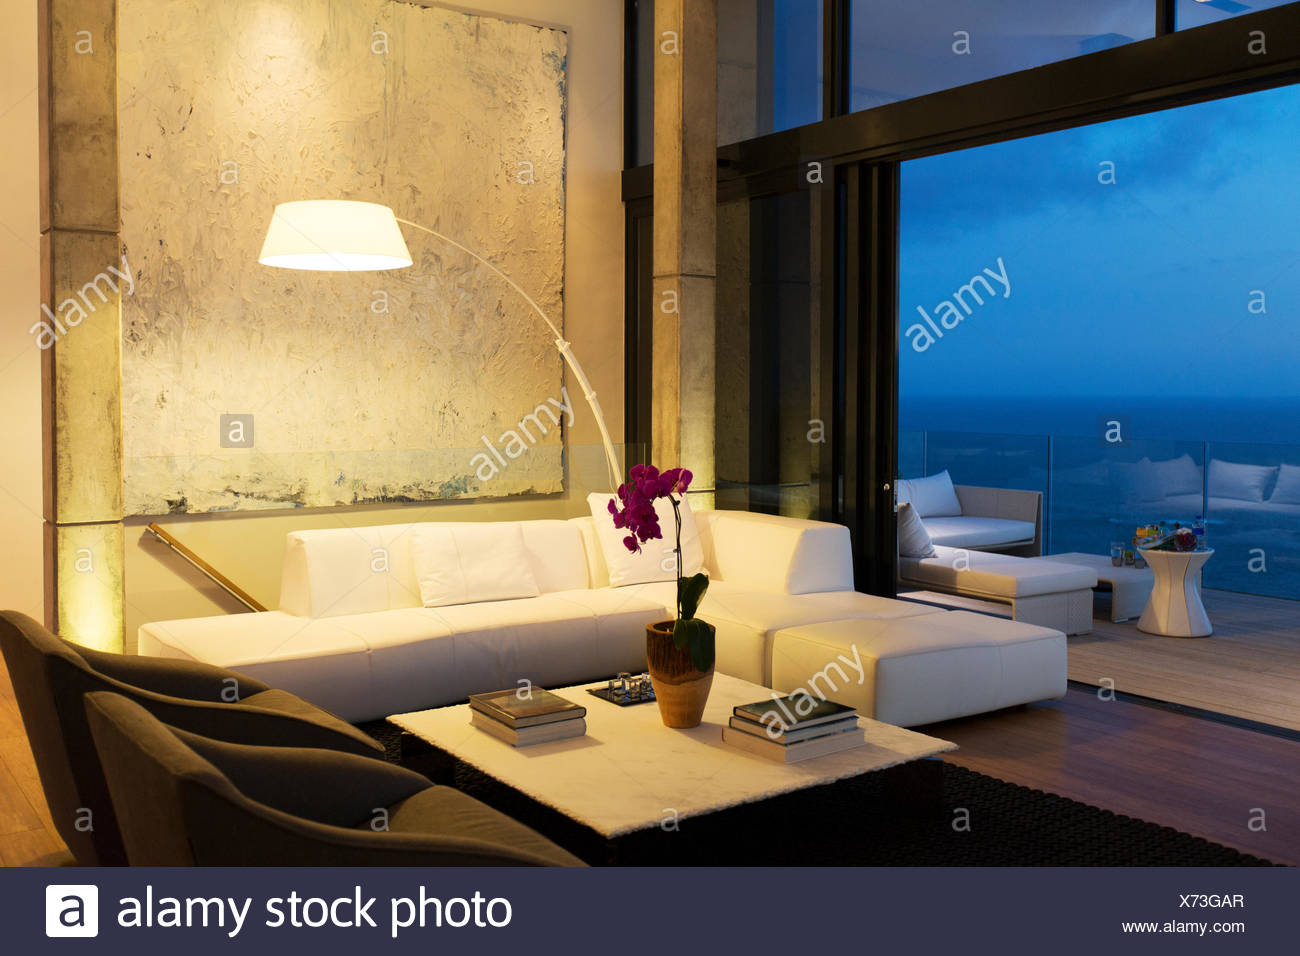 Lampe et canapé in modern living room Photo Stock